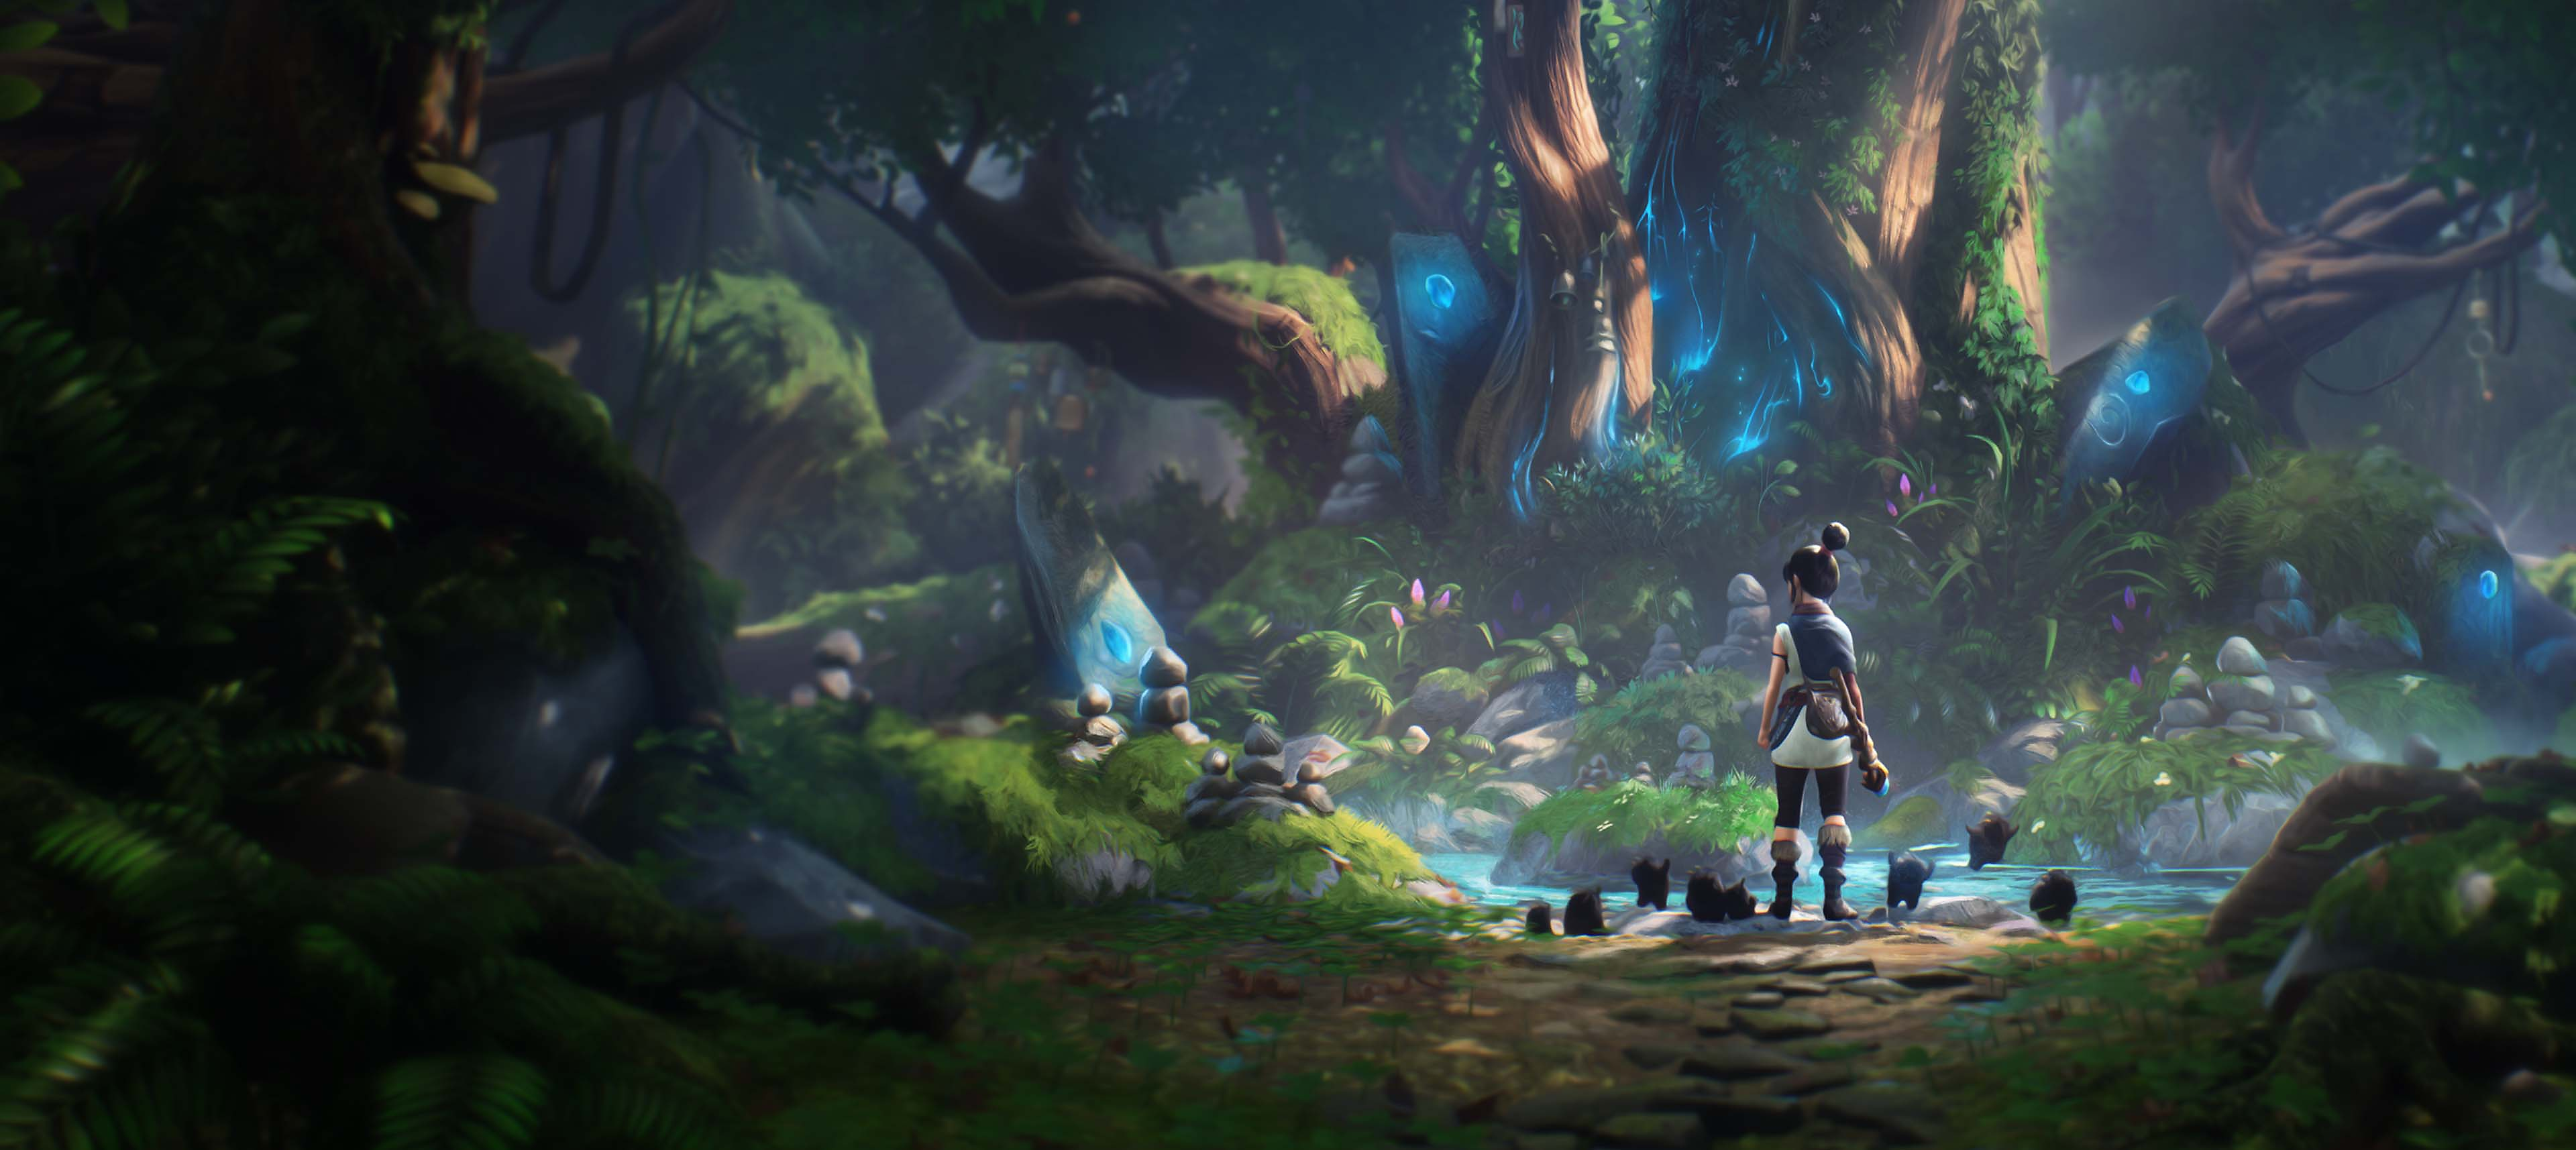 Concept artwork showing Kena and the Rot in front of a large glowing tree